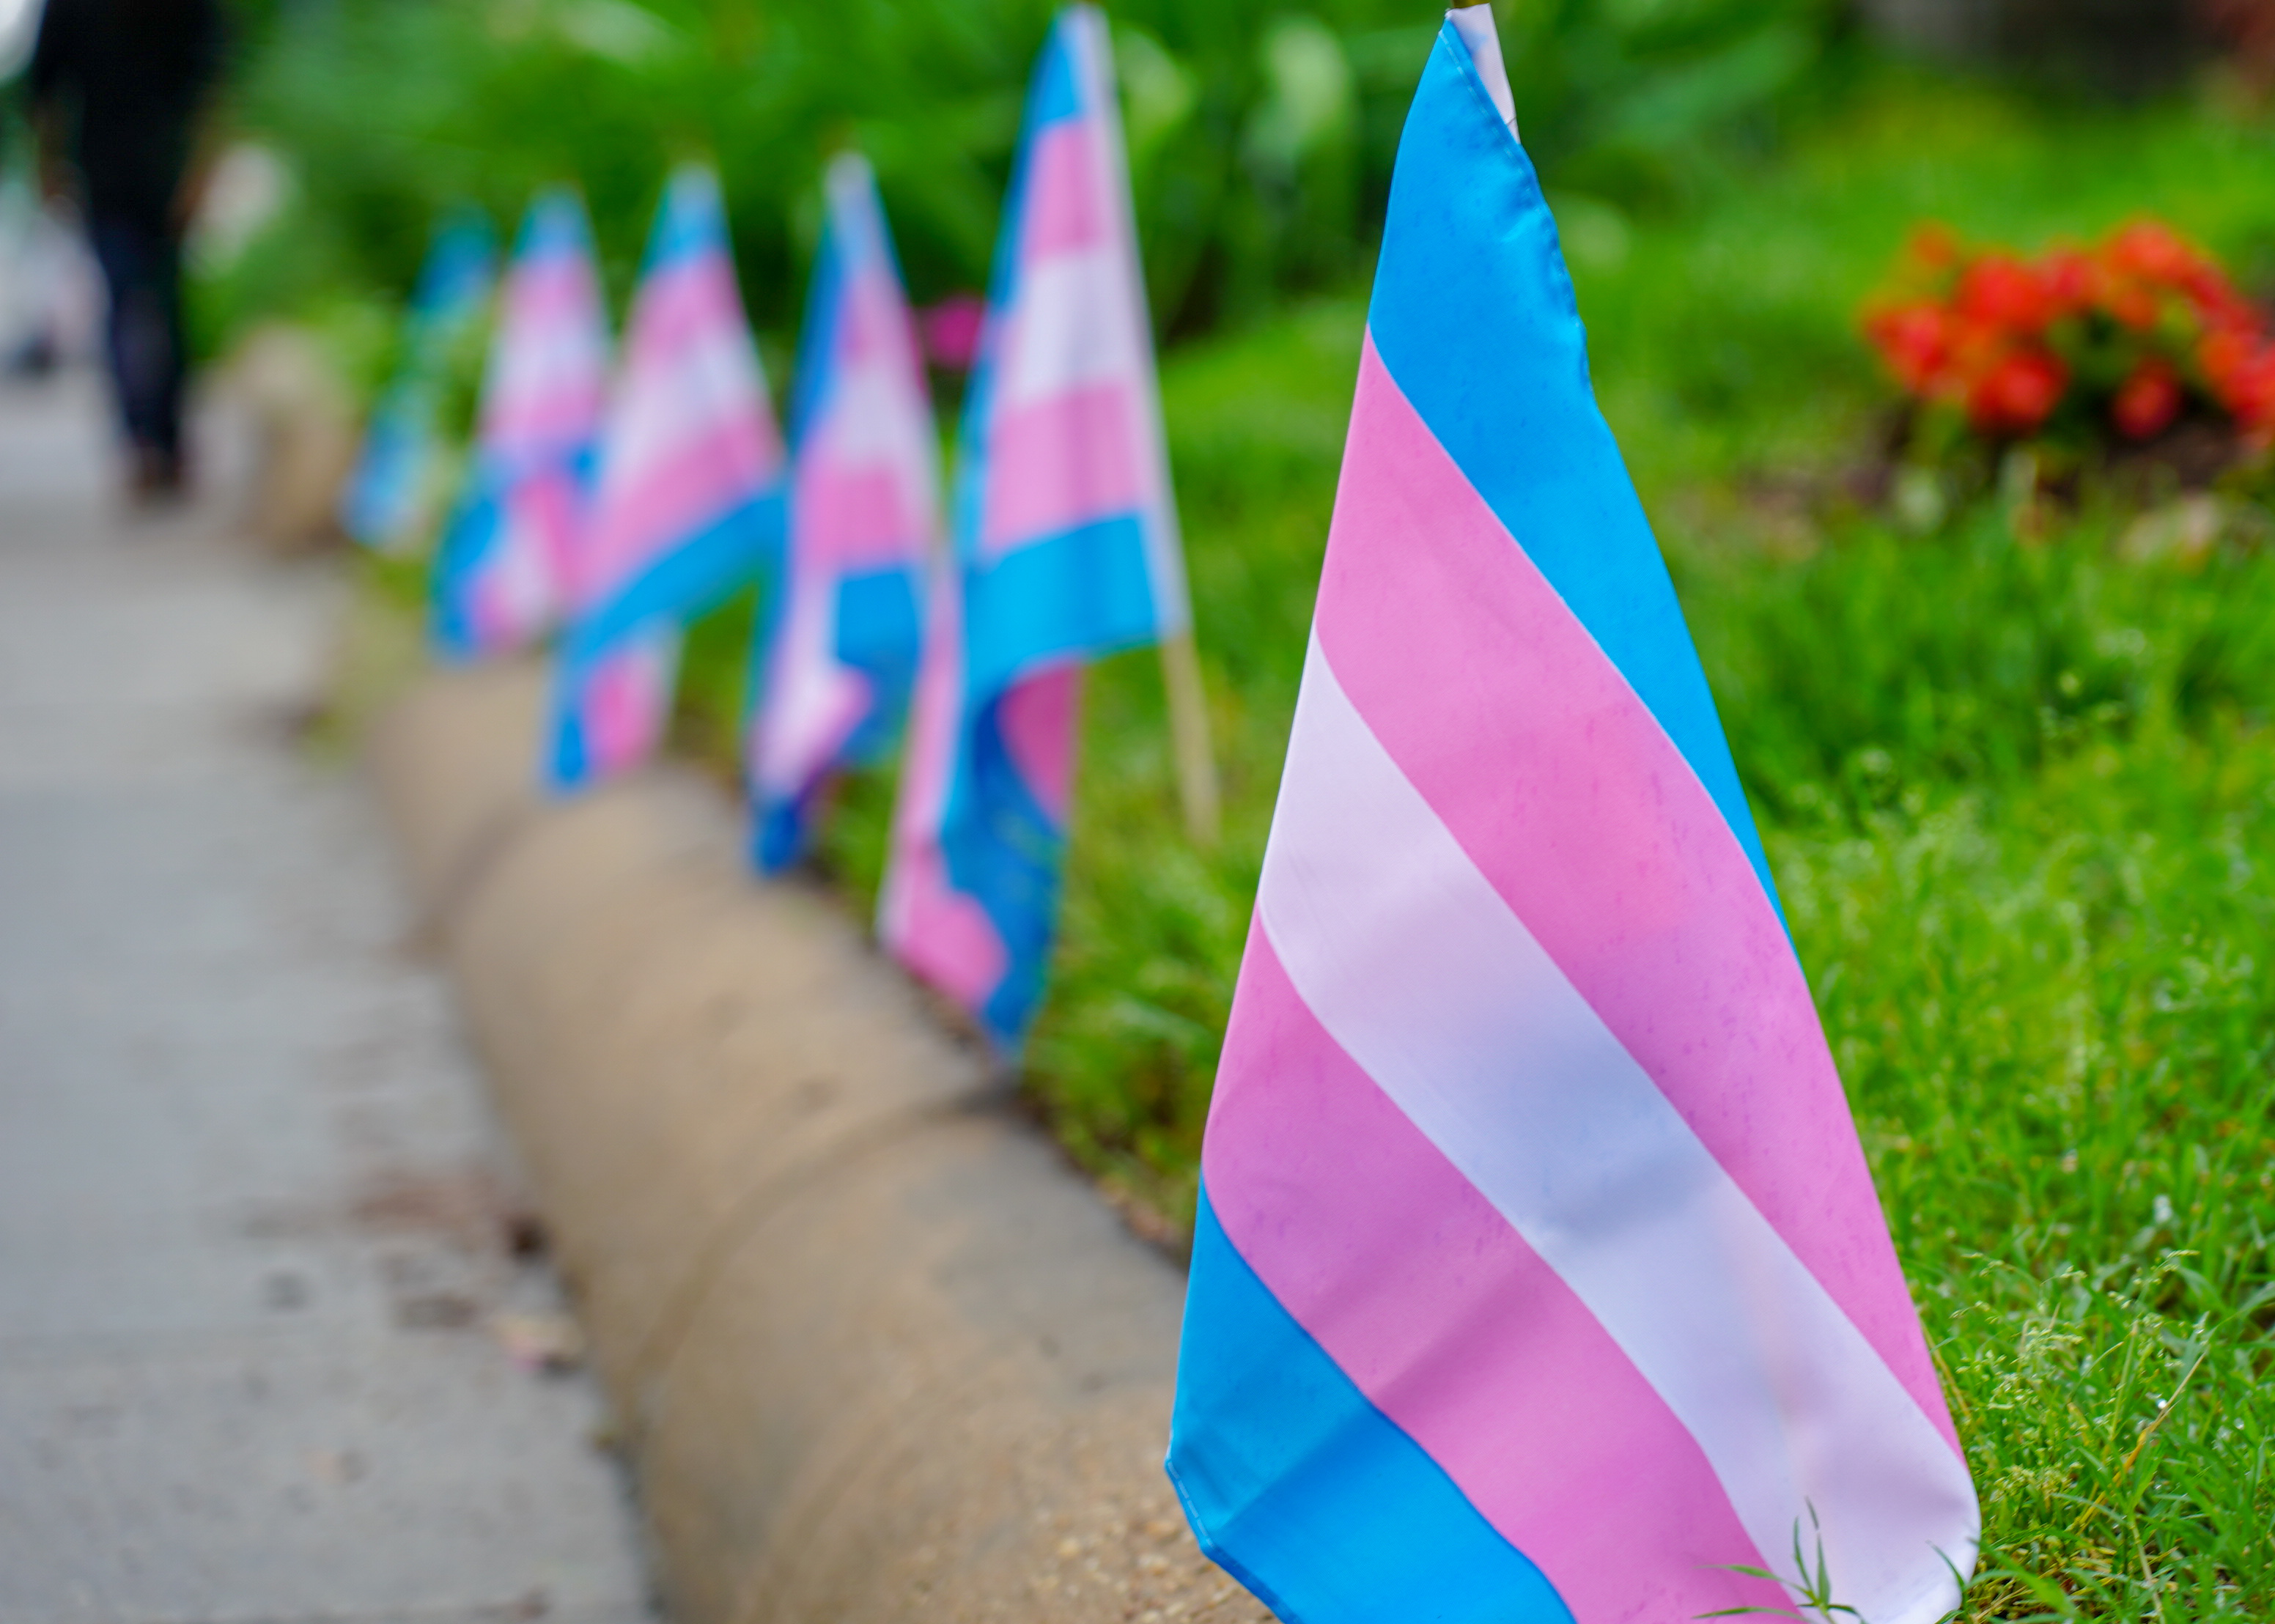 Transgender flags. Photo by Ted Eytan. (CC BY-SA 2.0) https://www.flickr.com/photos/taedc/41508984684/ https://creativecommons.org/licenses/by-sa/2.0/